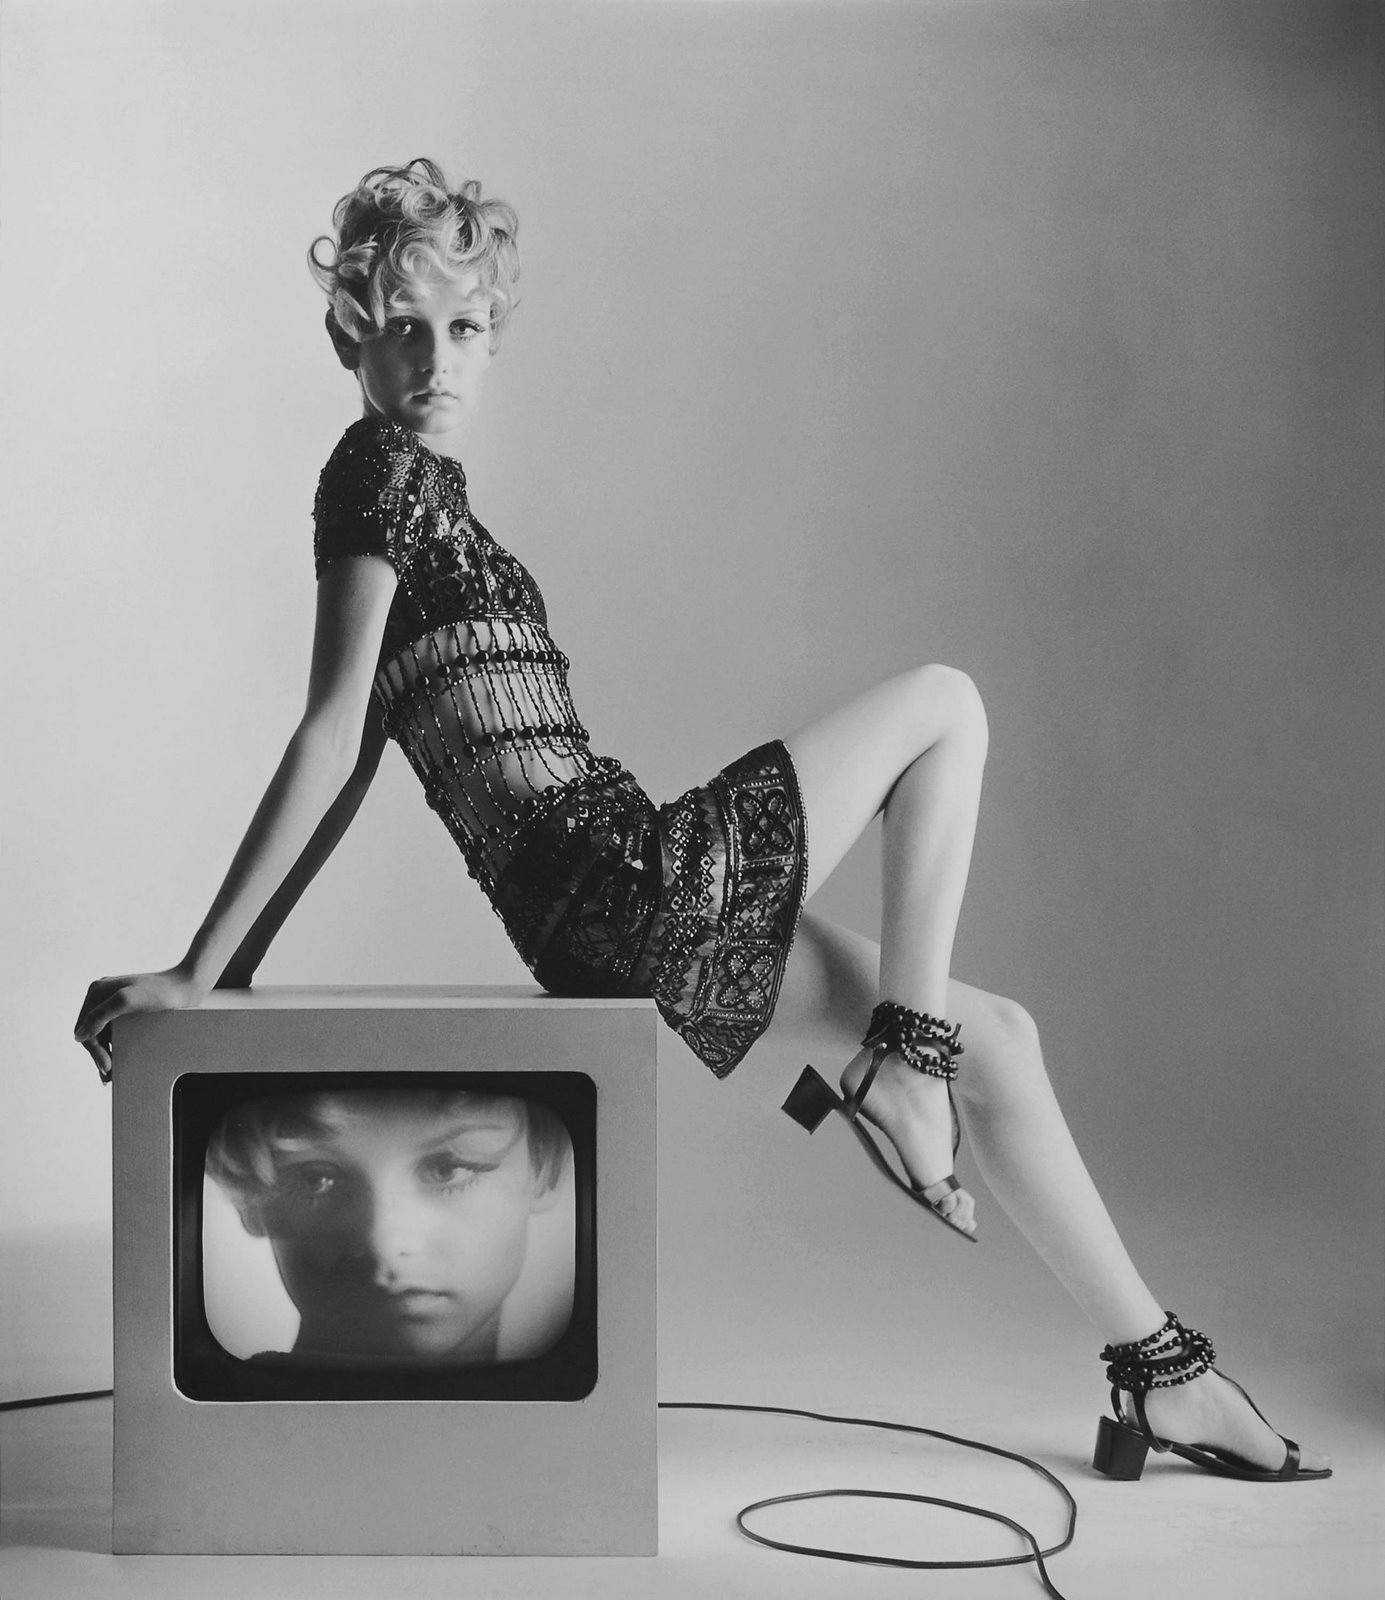 Twiggy, The Iconic Female Mod.